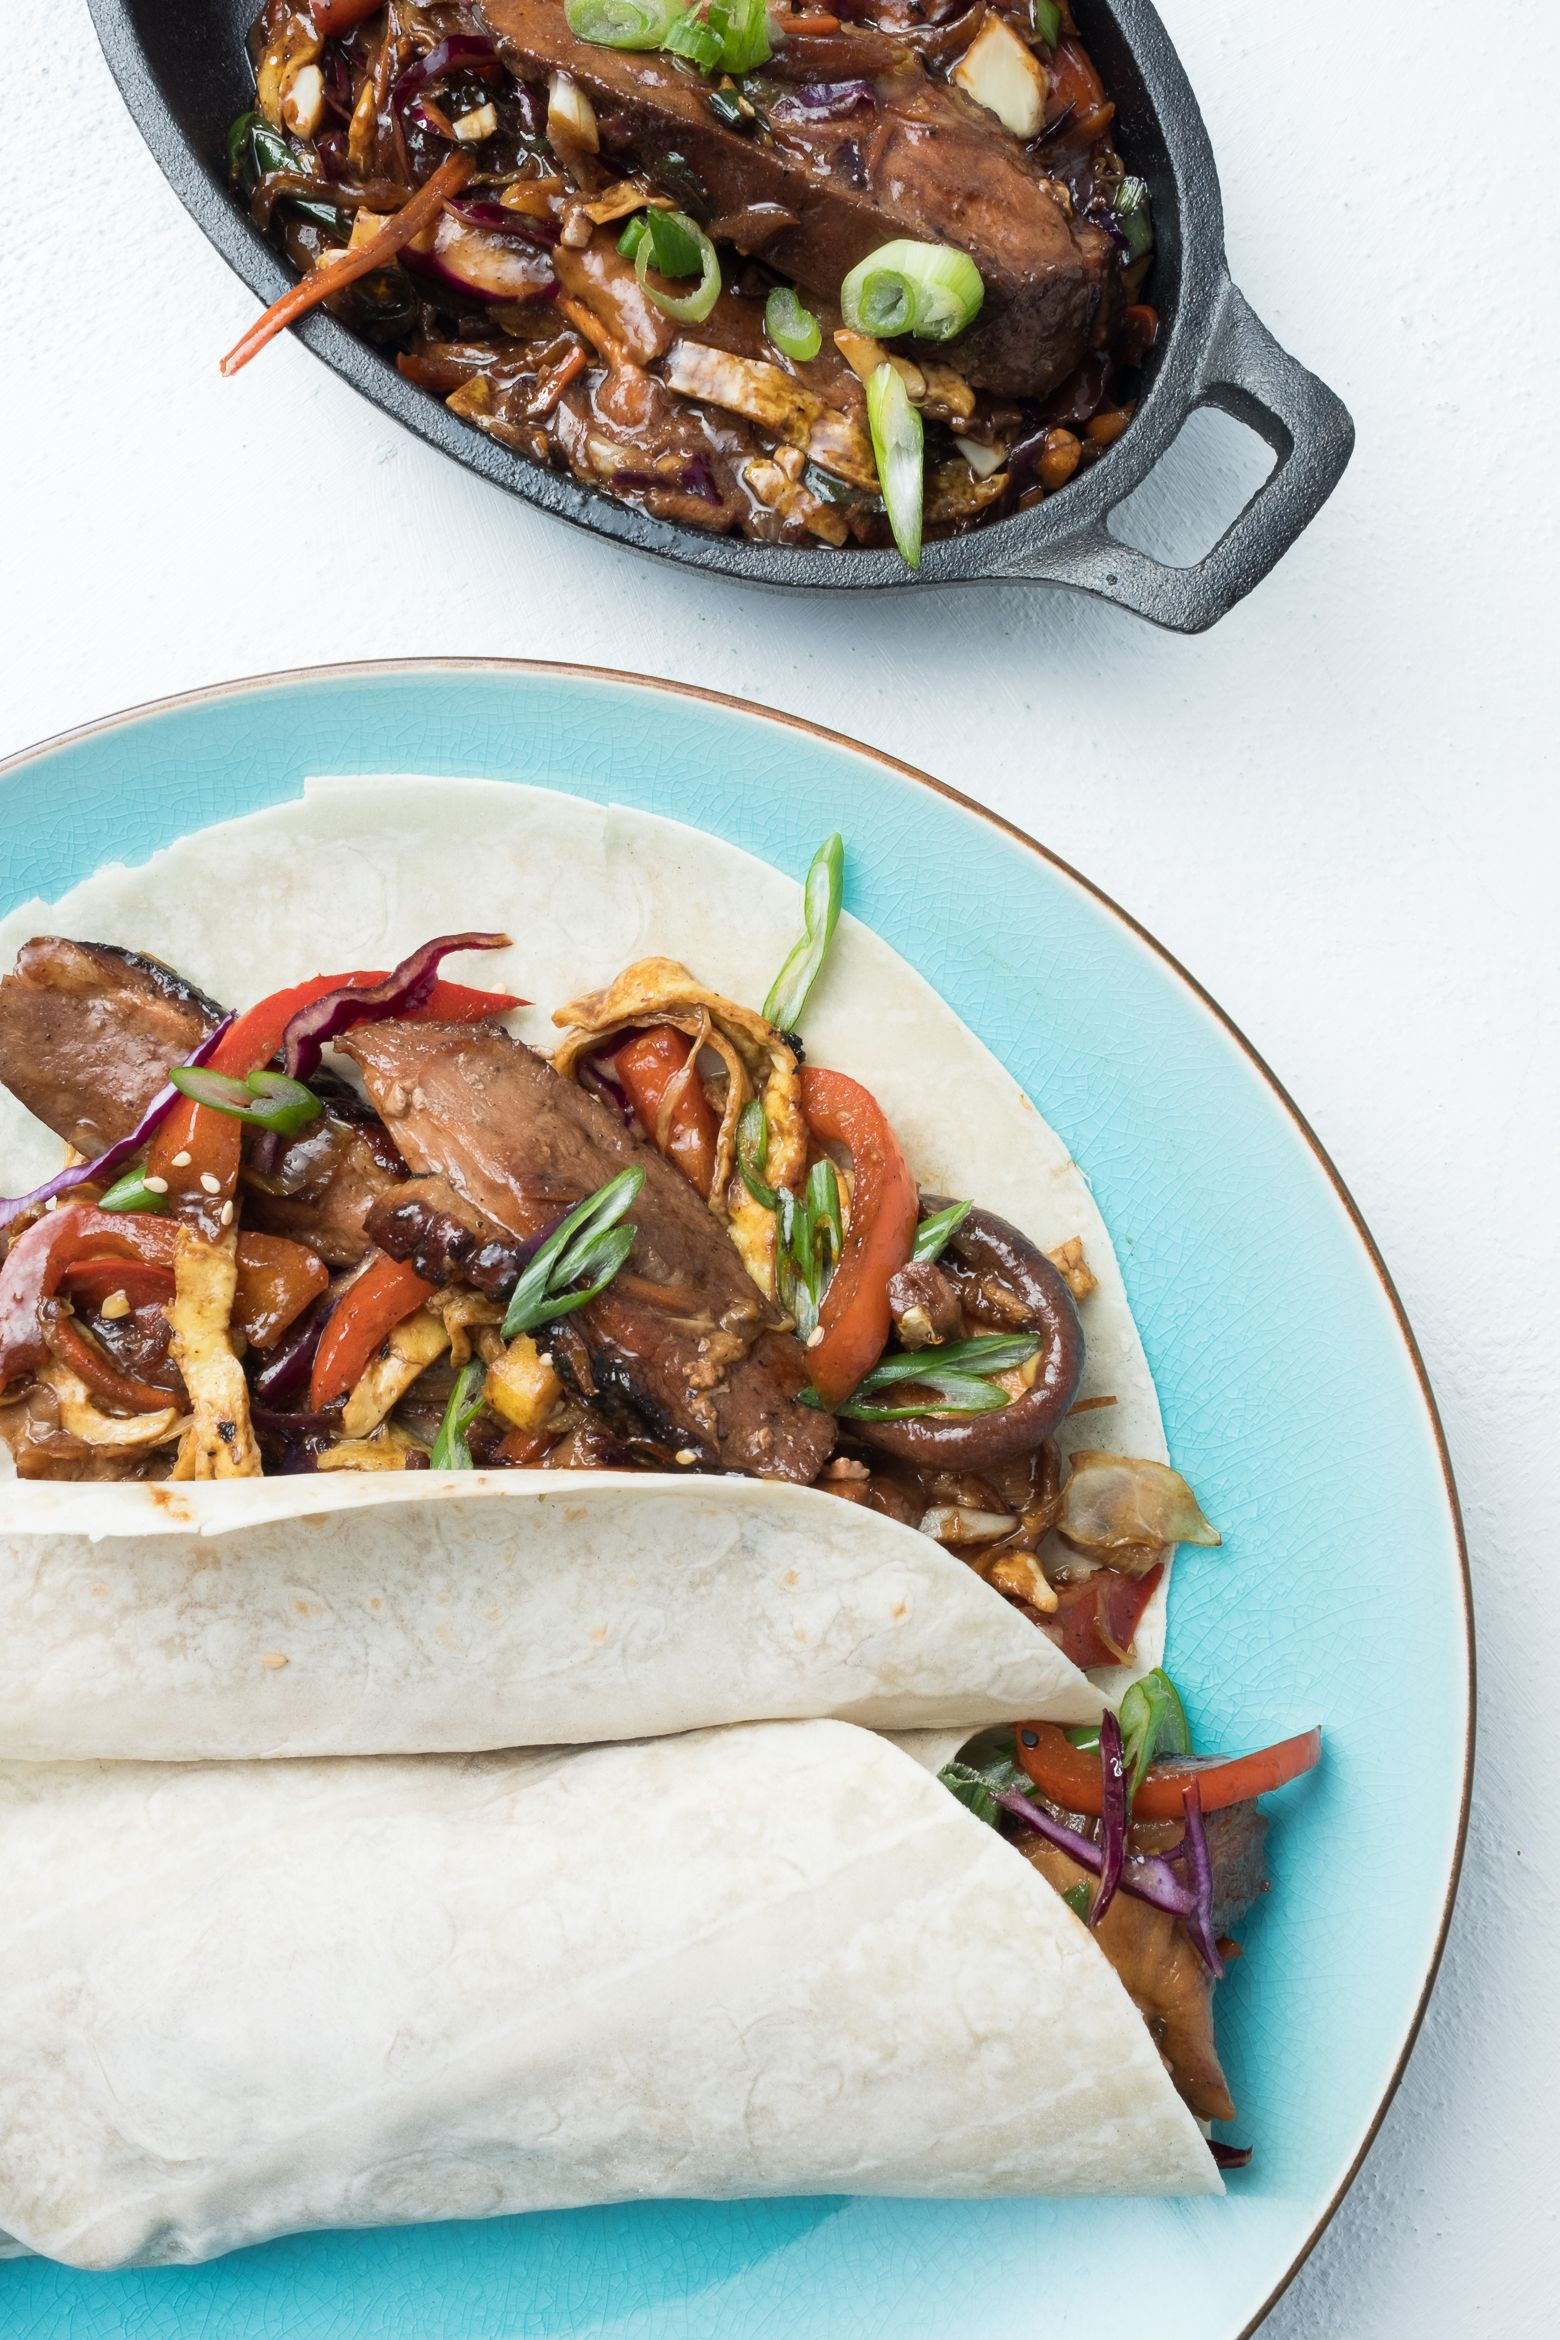 Less than 450 calories - Moo Shu is a traditional meal from northern China packed with shiitake mushrooms, ginger and garlic for a finger-licking dinner you're not ready to forget!